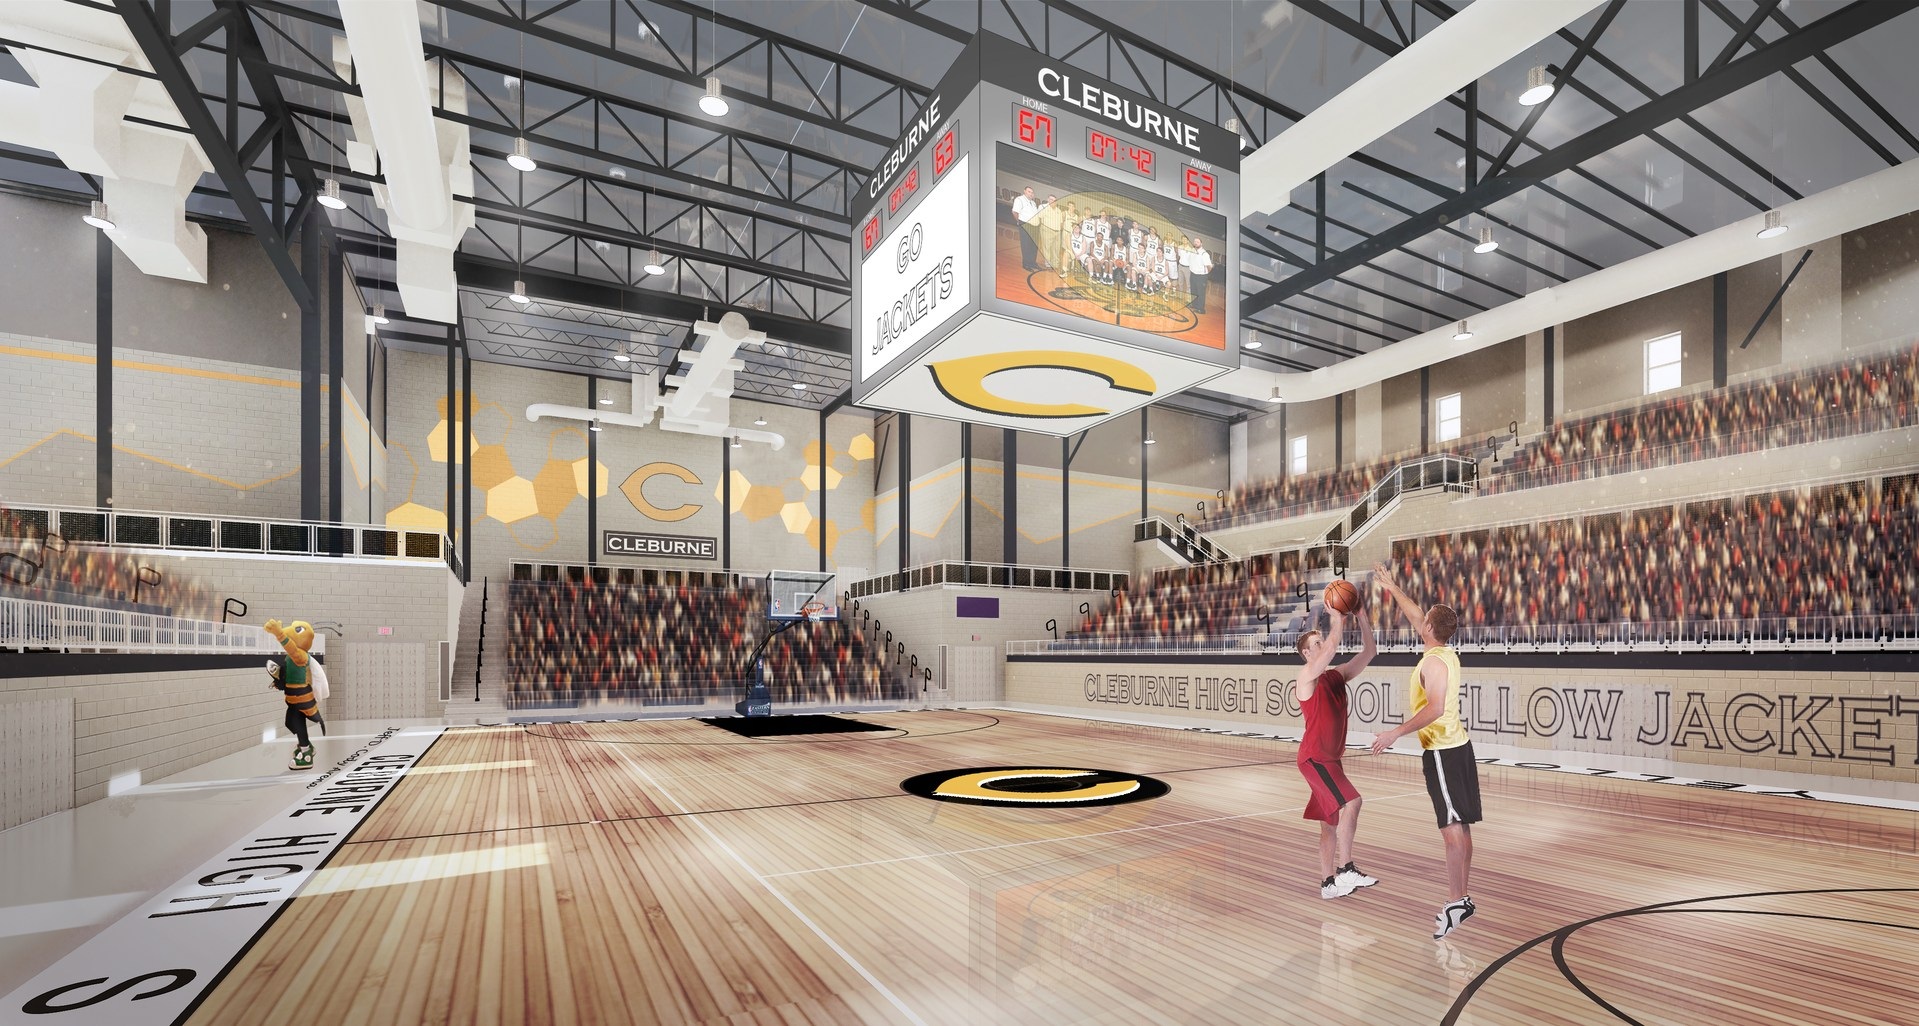 Basketball Court at Cleburne High School